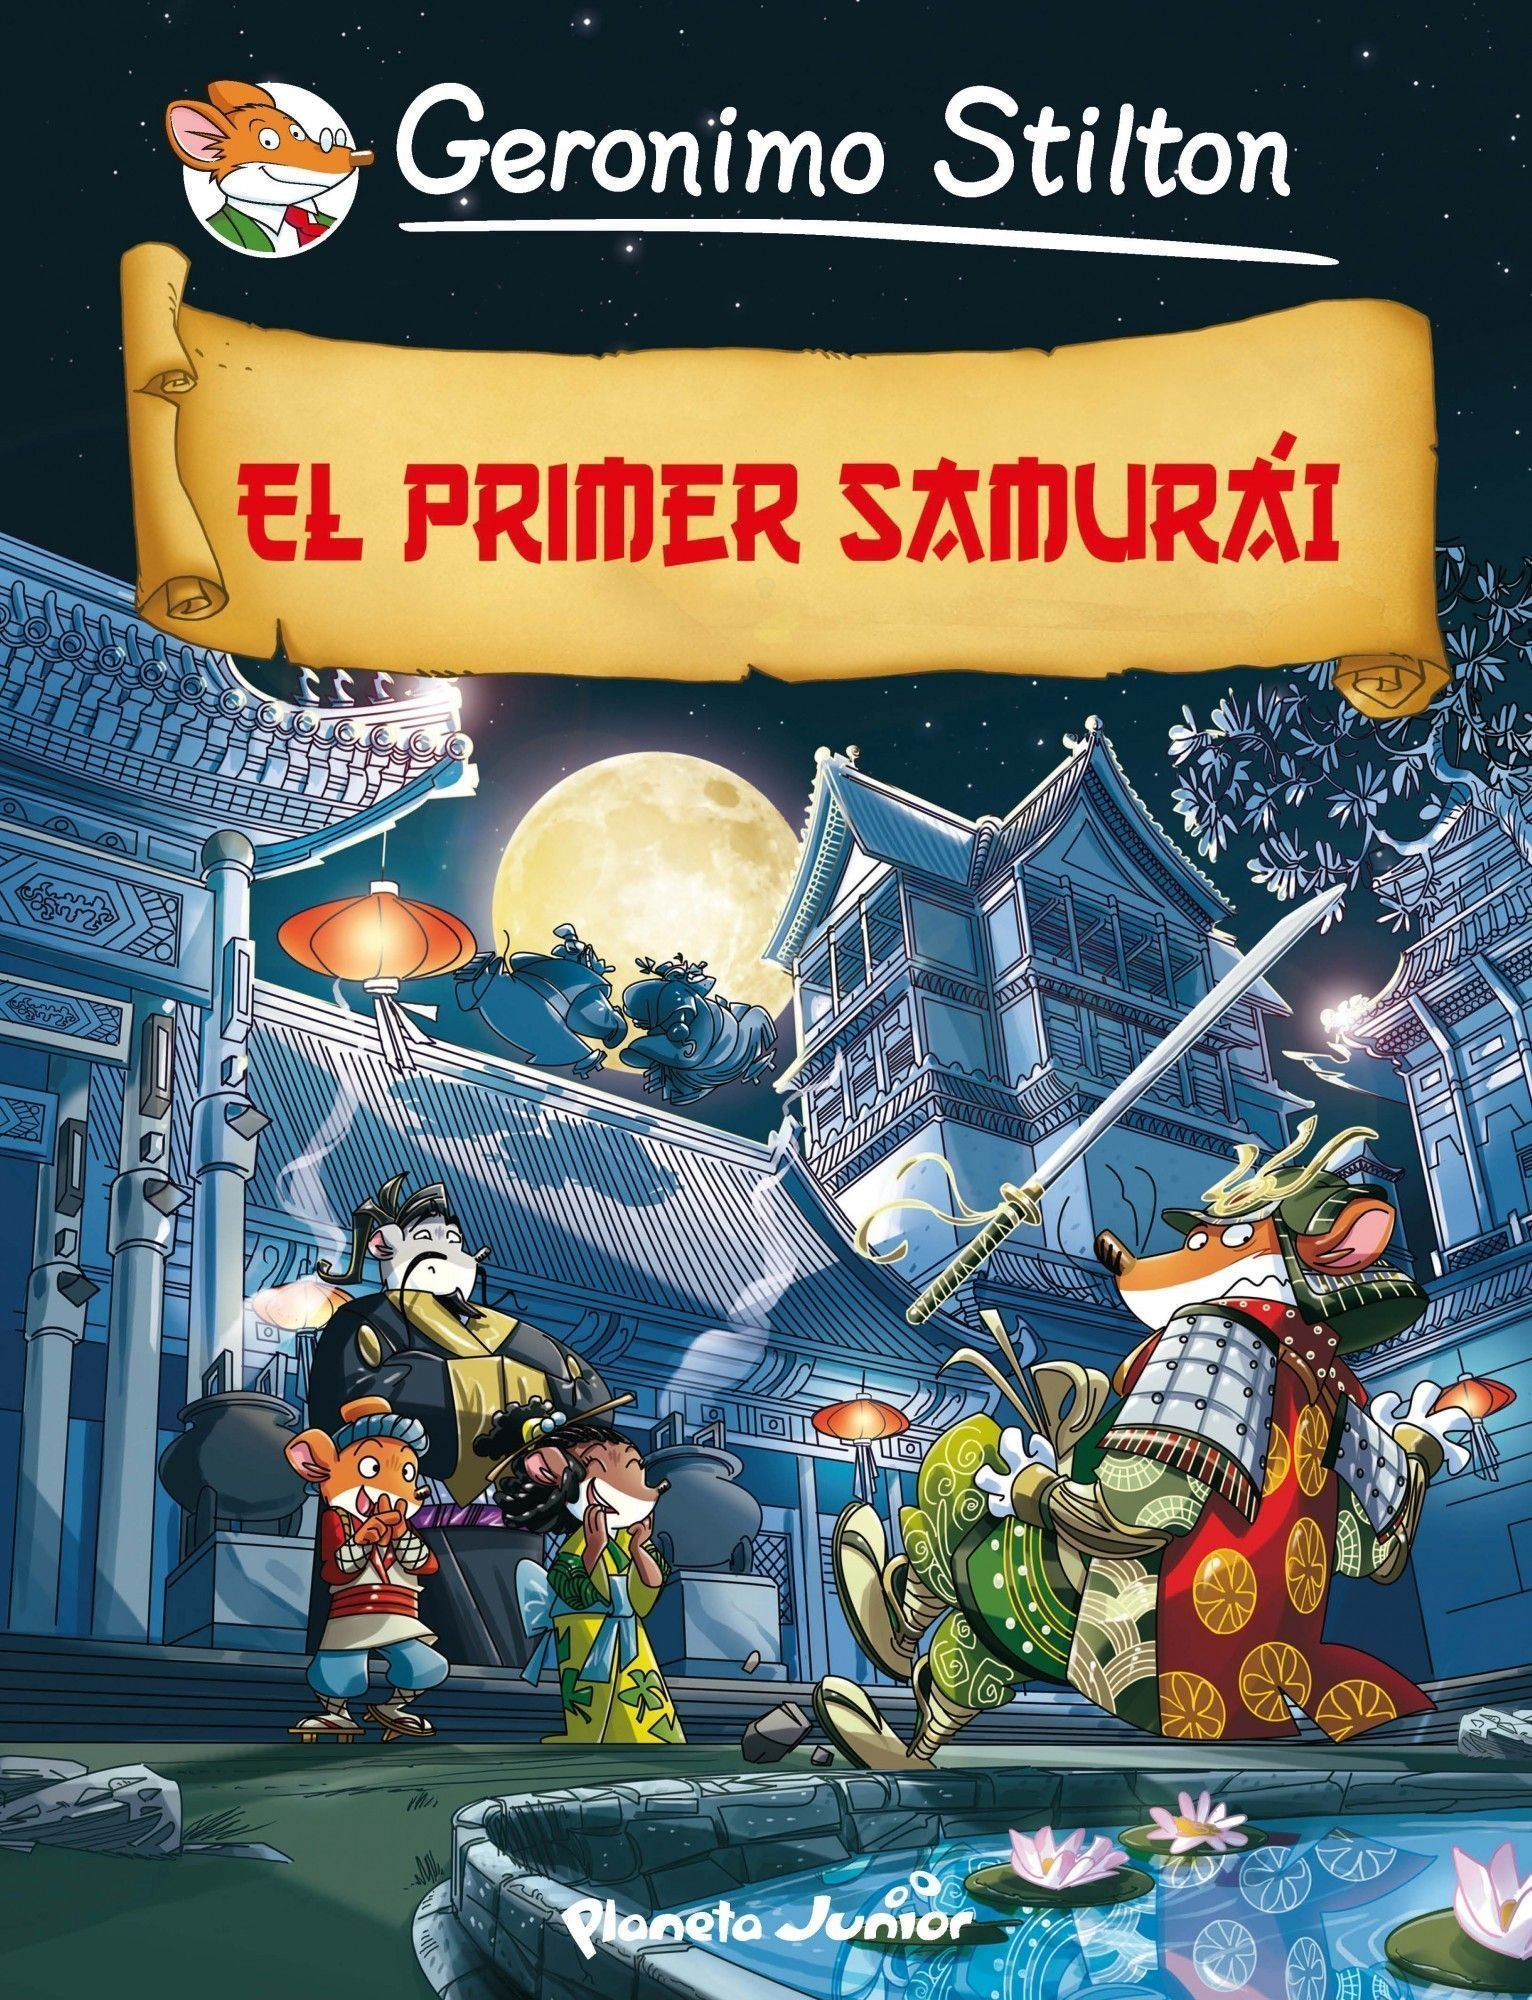 El primer samurái (Cómic Geronimo Stilton): Amazon.es: Stilton ...